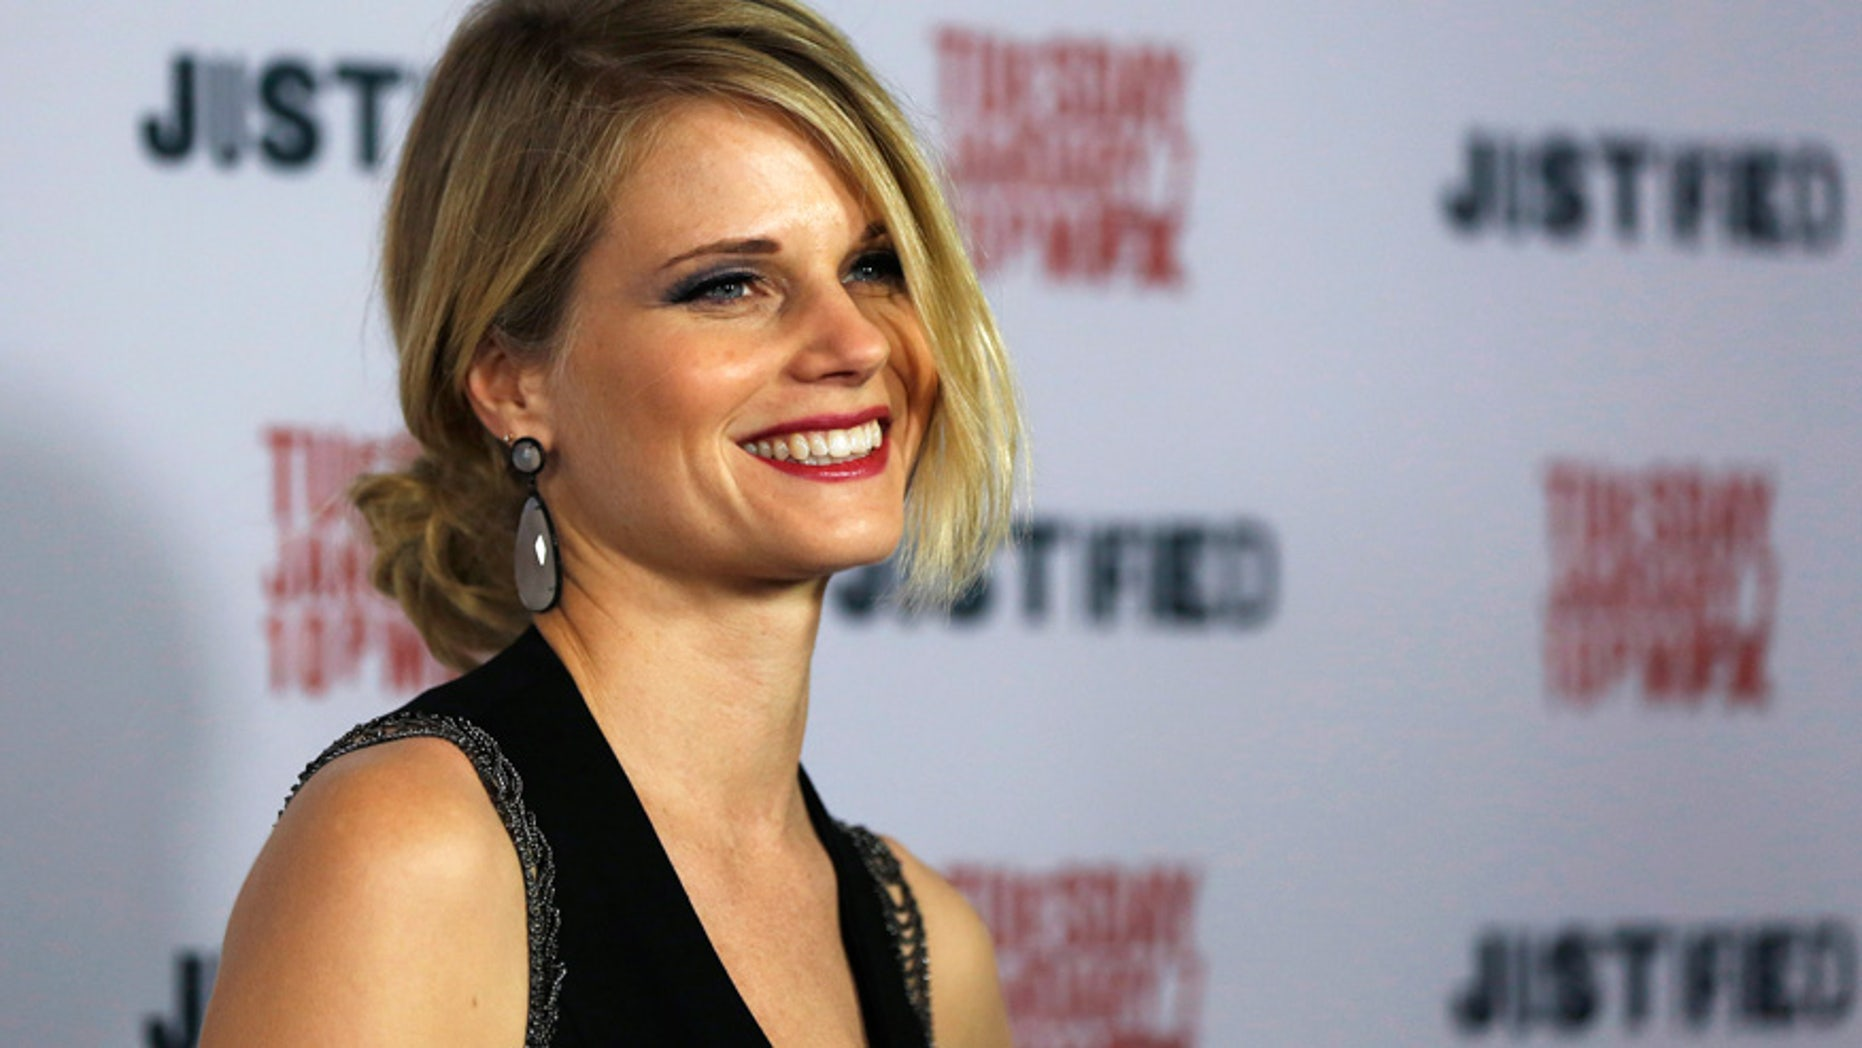 """Joelle Carter of """"Justified"""" fame is enjoying her new role as good cop Laura on """"Chicago Justice."""""""